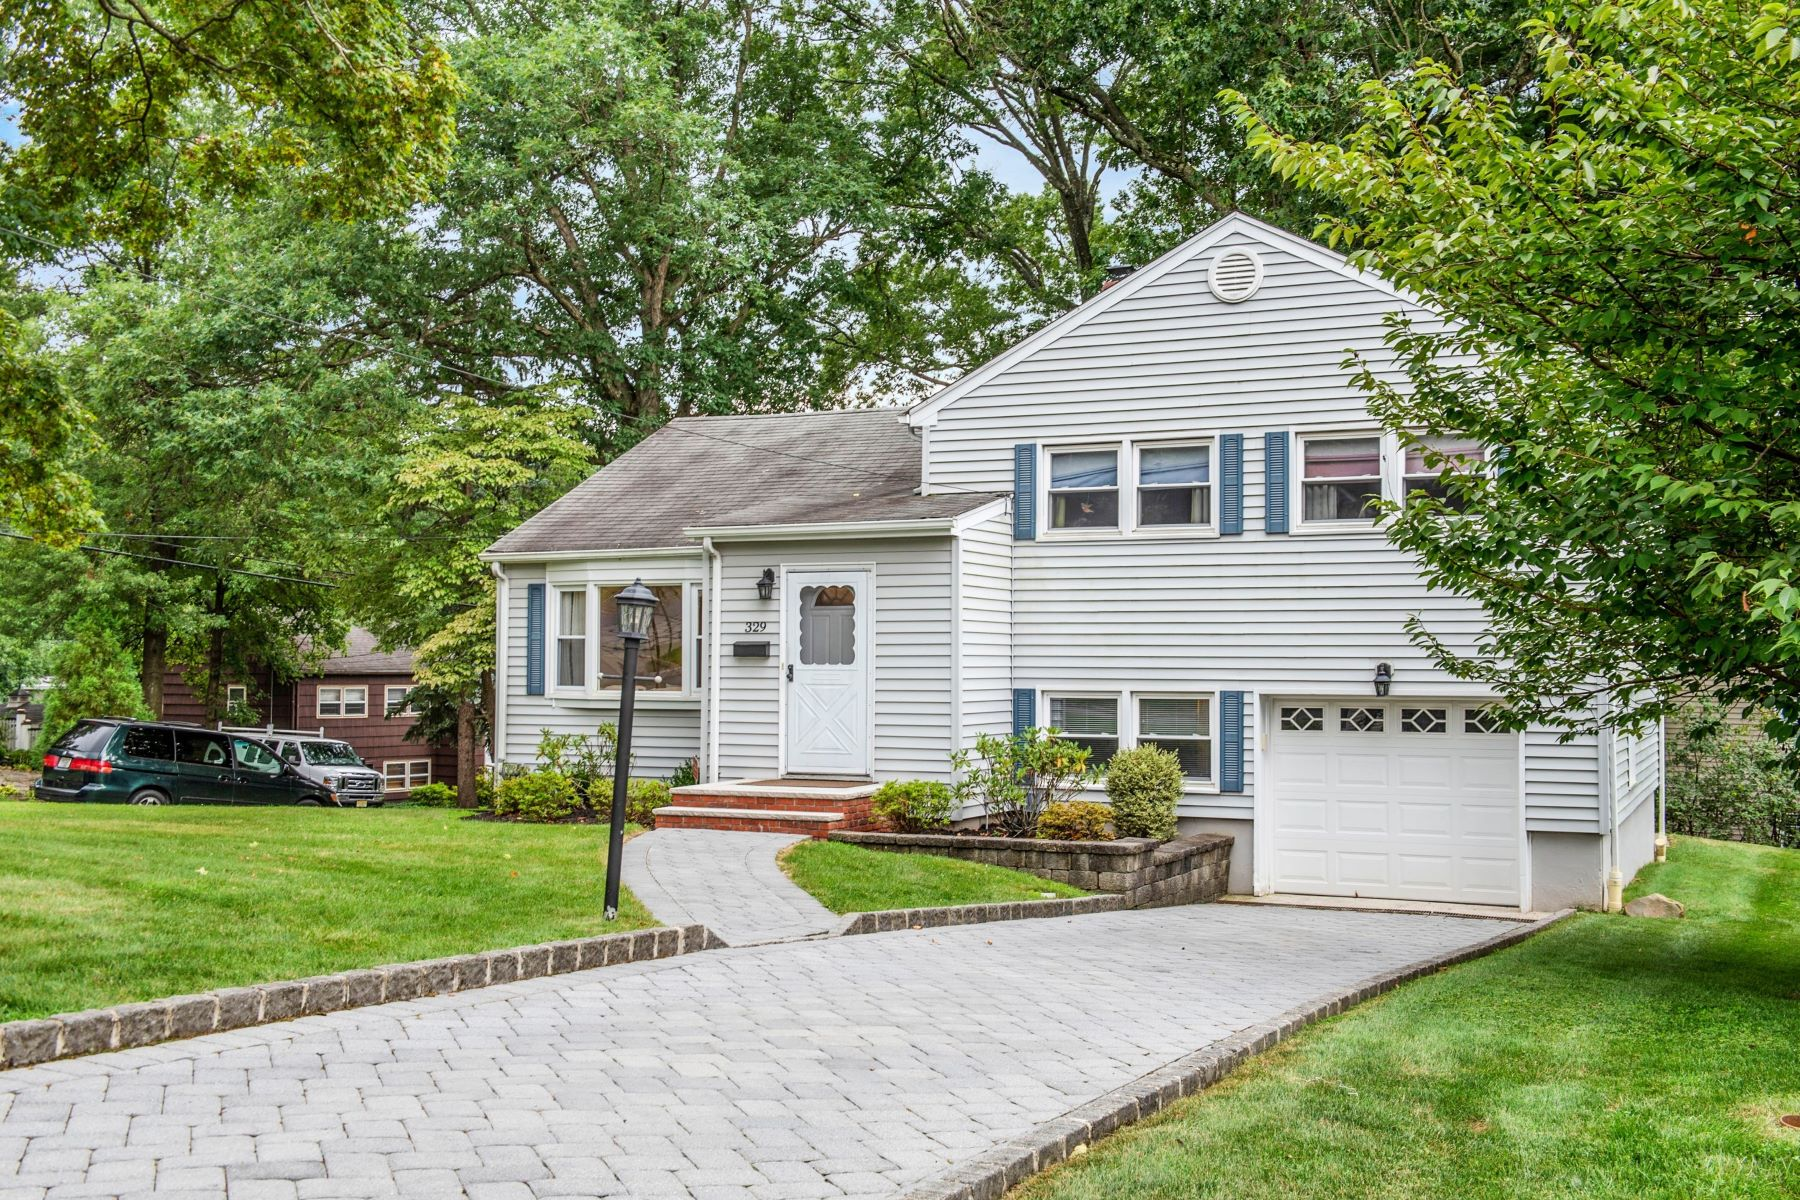 Single Family Homes for Sale at Well Manicured Corner Lot 329 Livingston Avenue New Providence, New Jersey 07974 United States